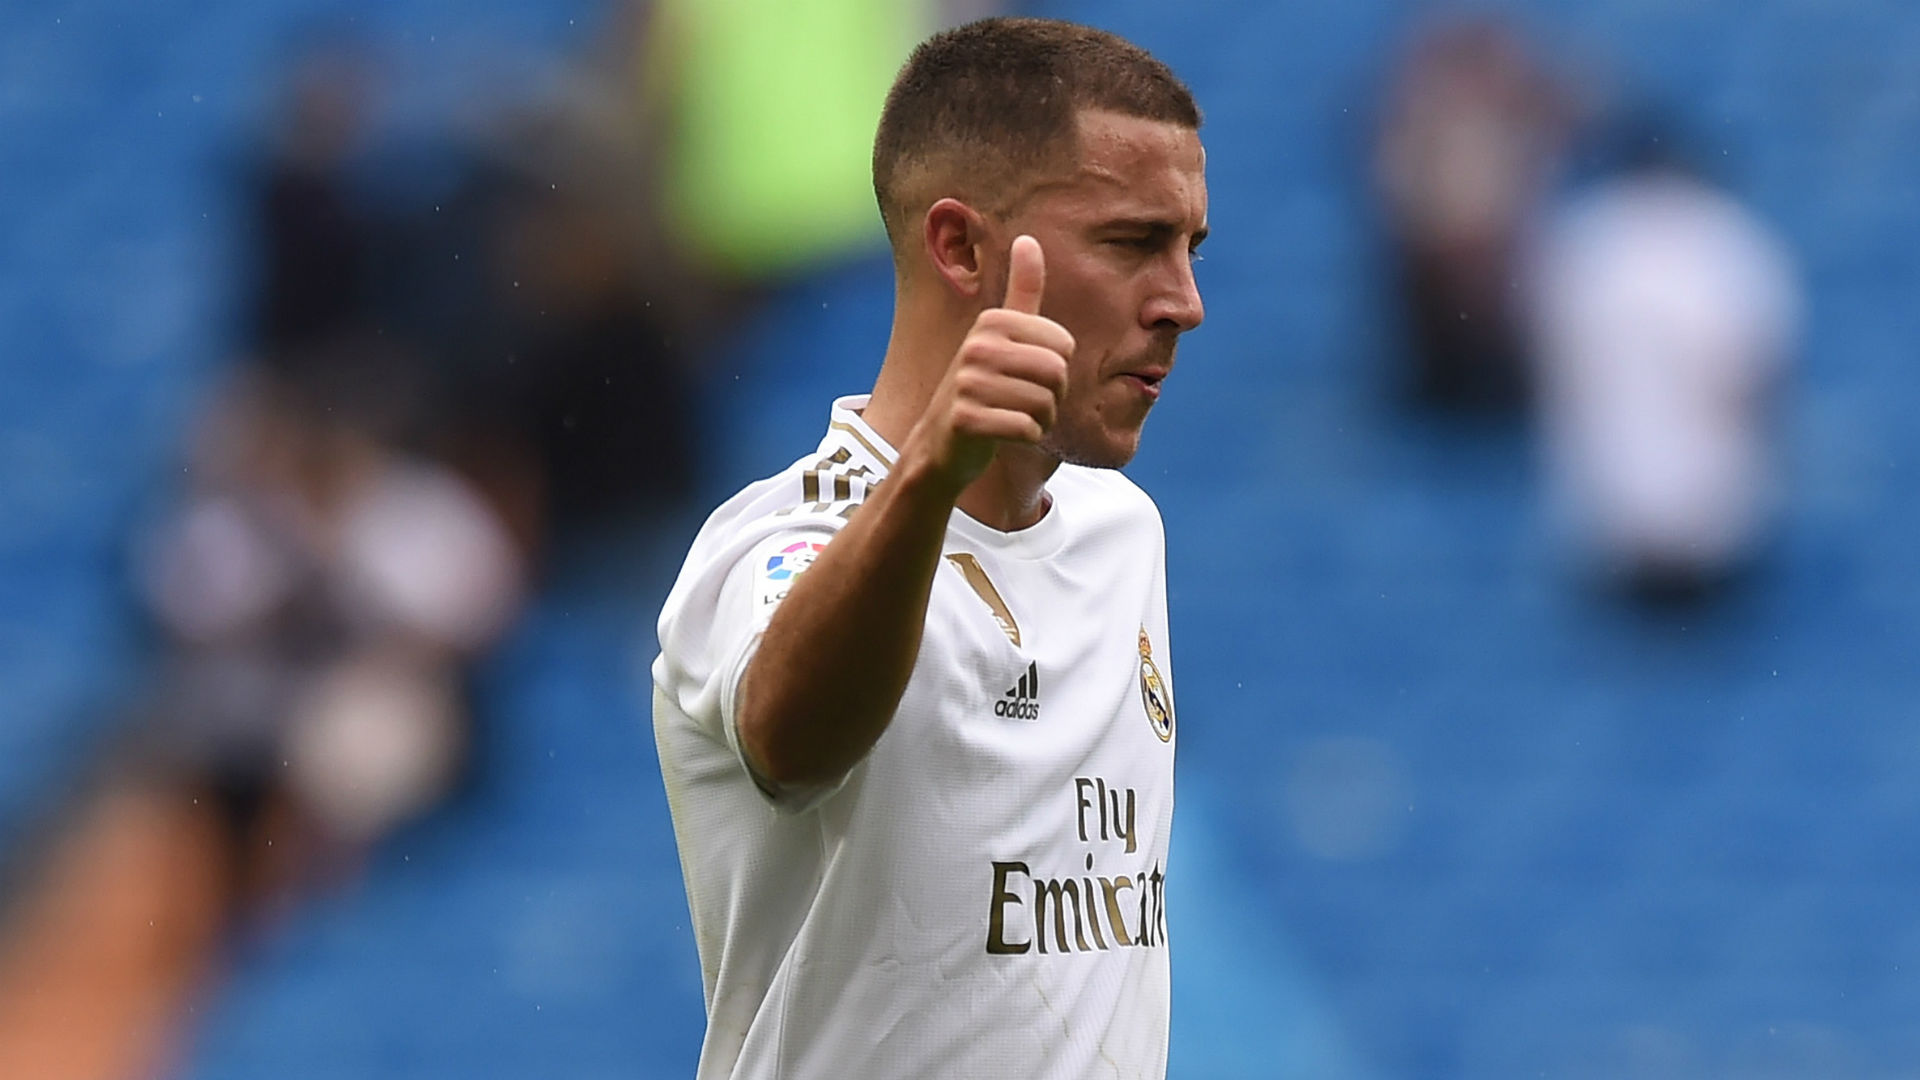 Hazard's slow start reminds unconcerned Zidane of his Real Madrid introduction